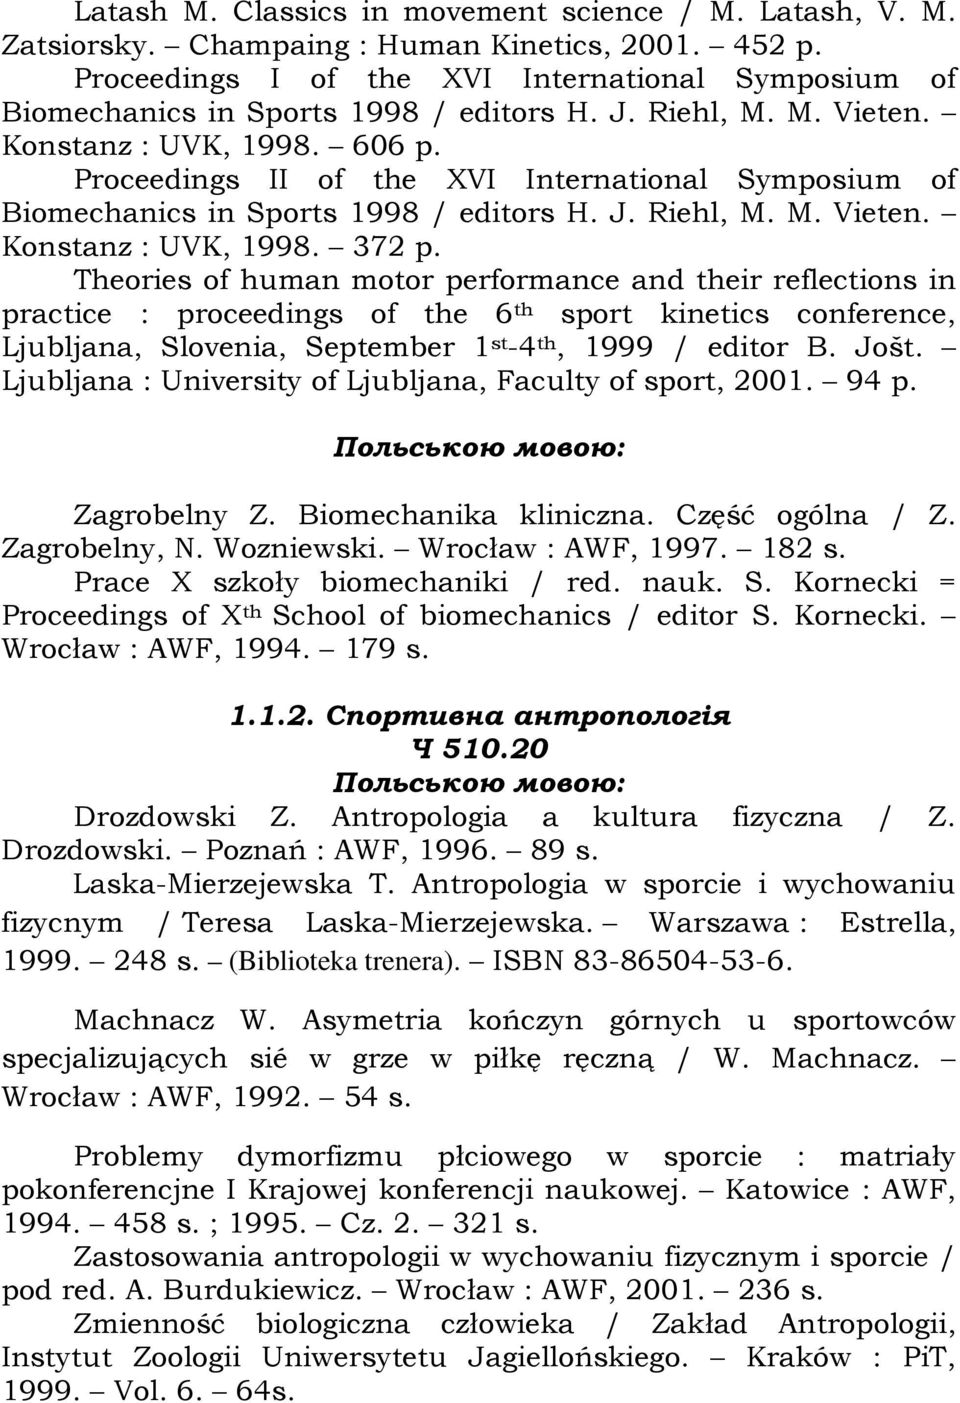 Proceedings II of the XVI International Symposium of Biomechanics in Sports 1998 / editors H. J. Riehl, M. M. Vieten. Konstanz : UVK, 1998. 372 p.